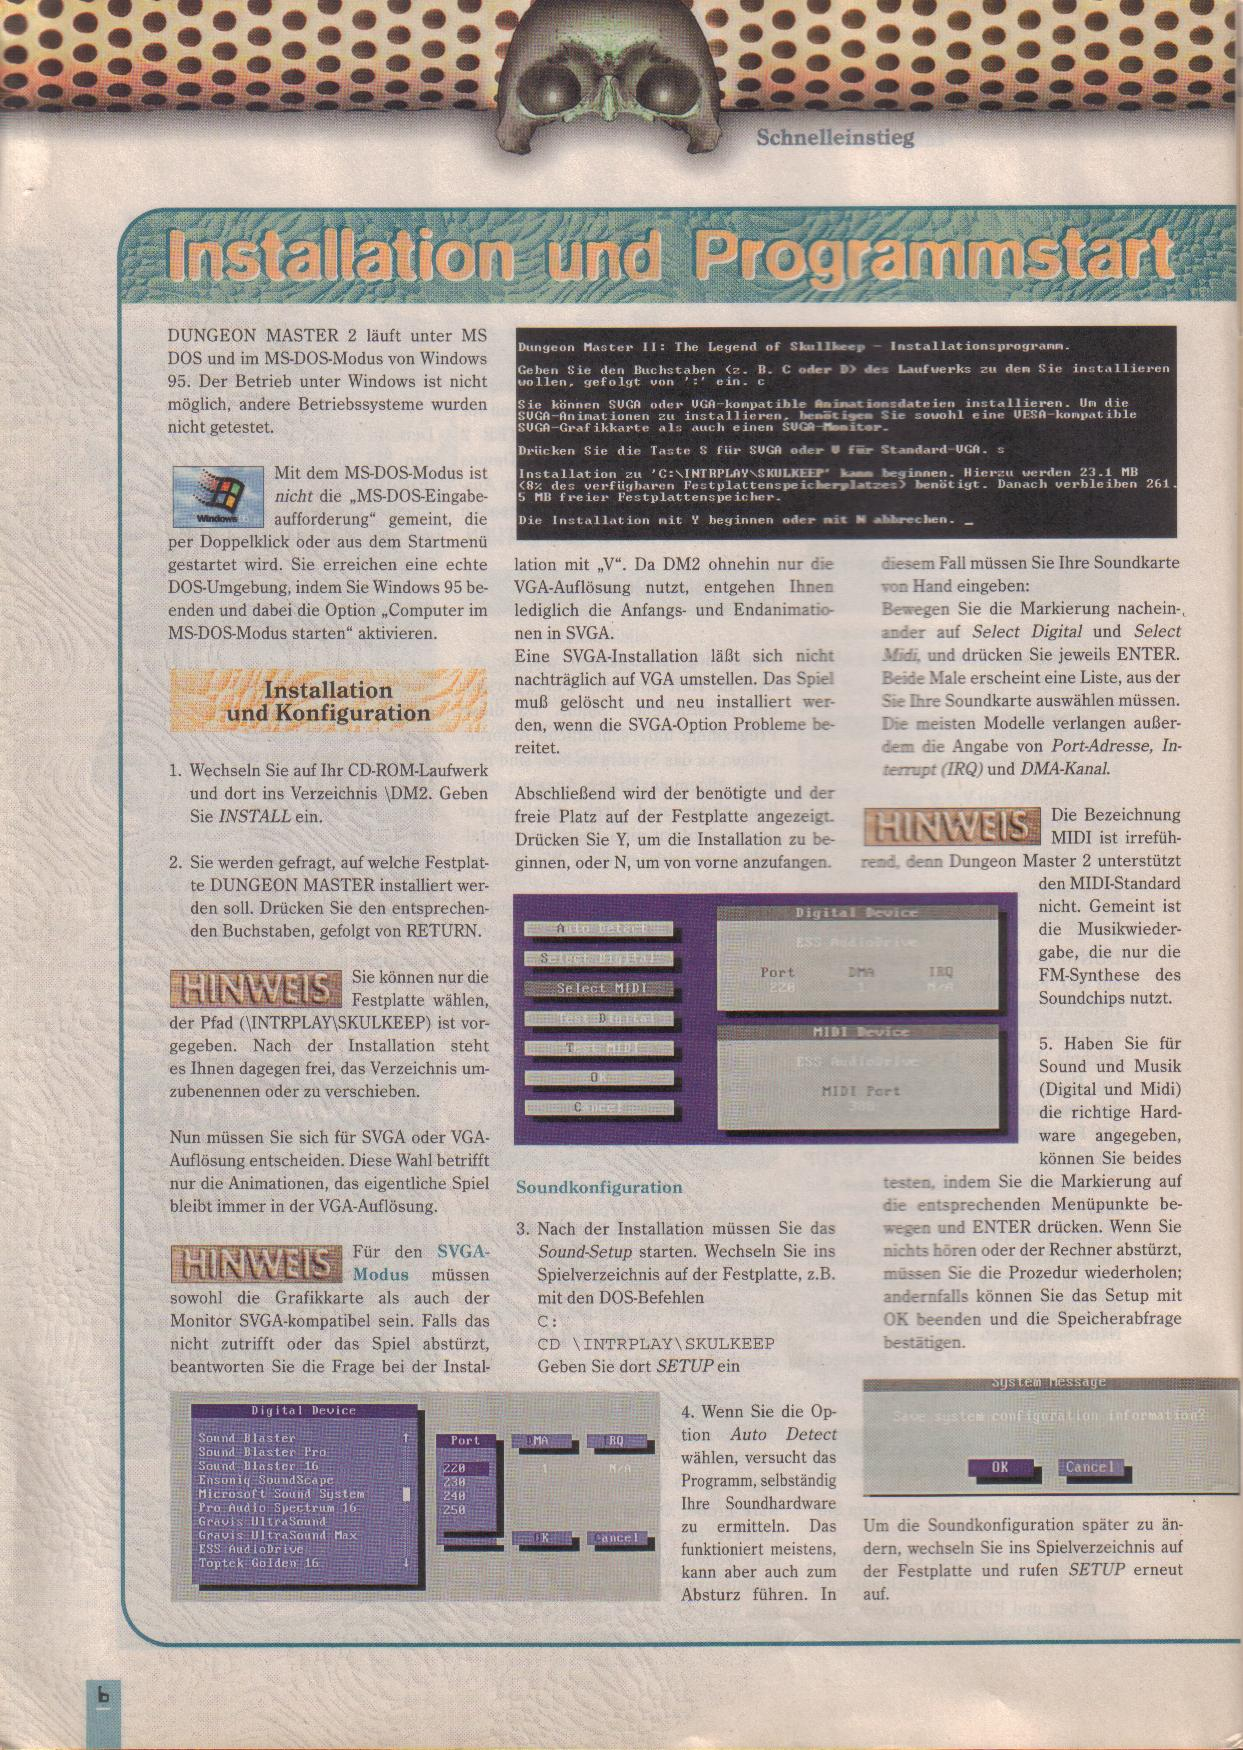 Dungeon Master II for PC (German, Best Seller Games) Page 6